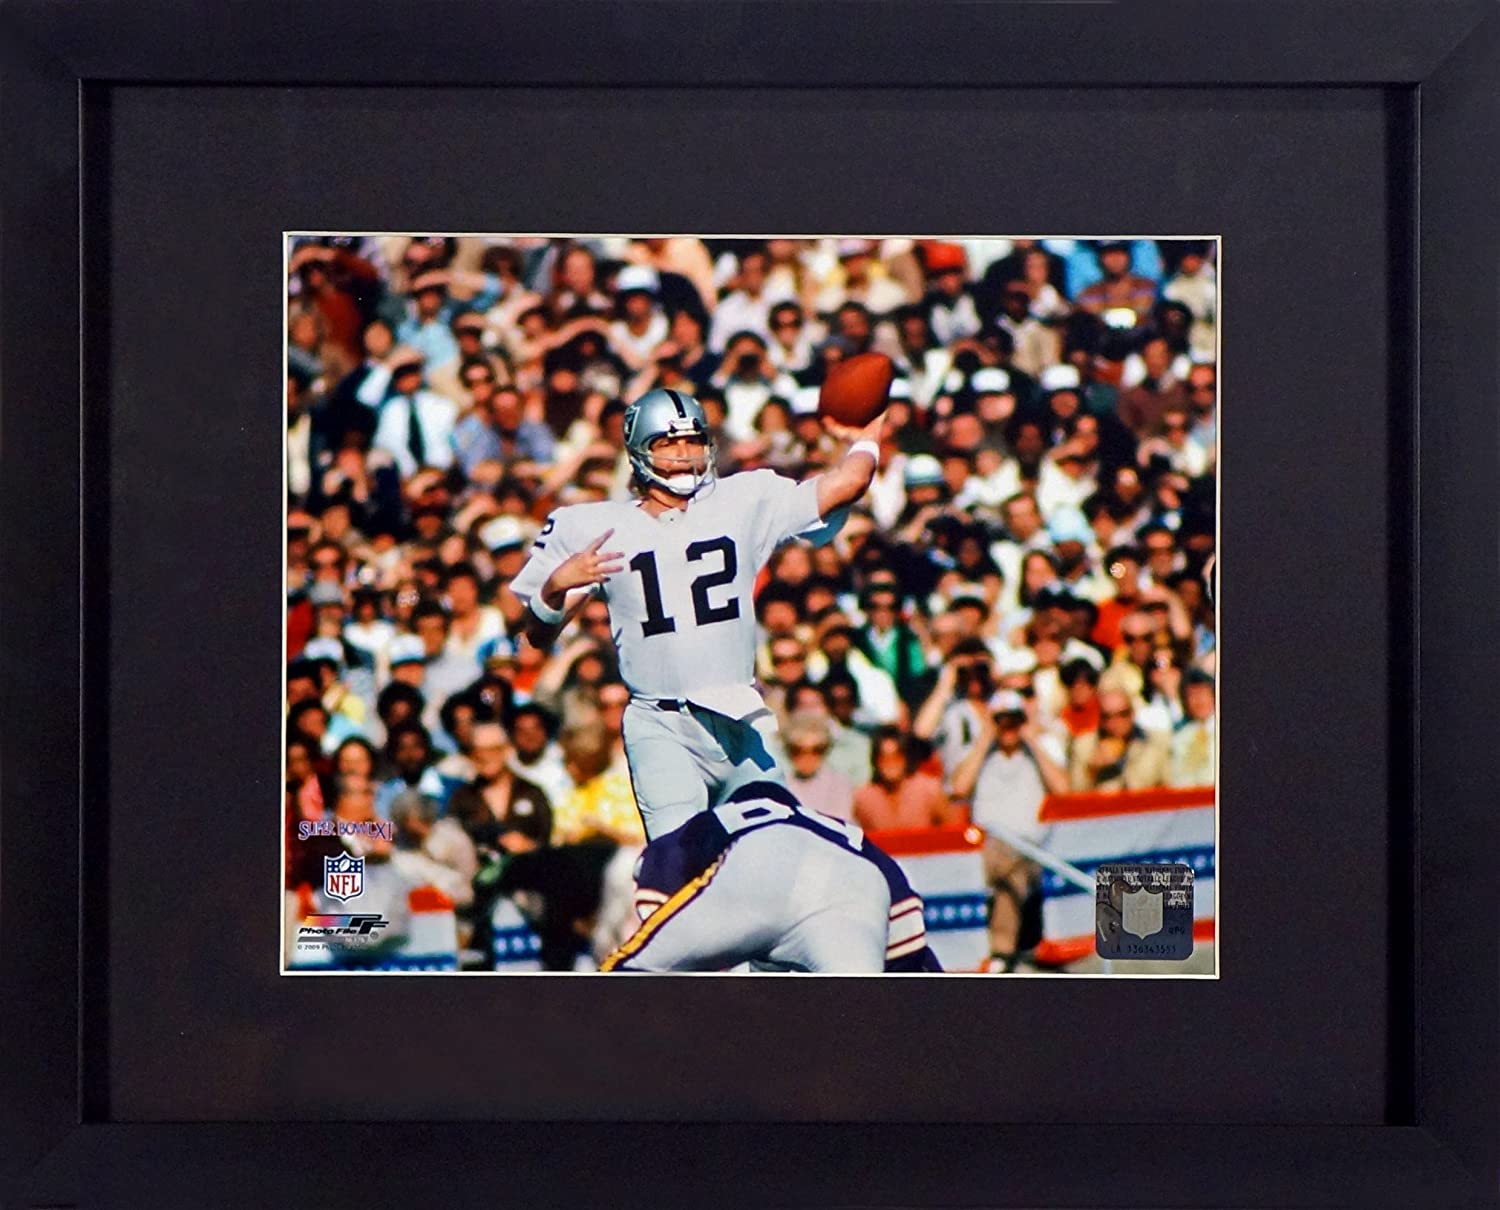 online store 670c9 20517 Amazon.com: Oakland Raiders Ken Stabler Super Bowl XI 8x10 ...